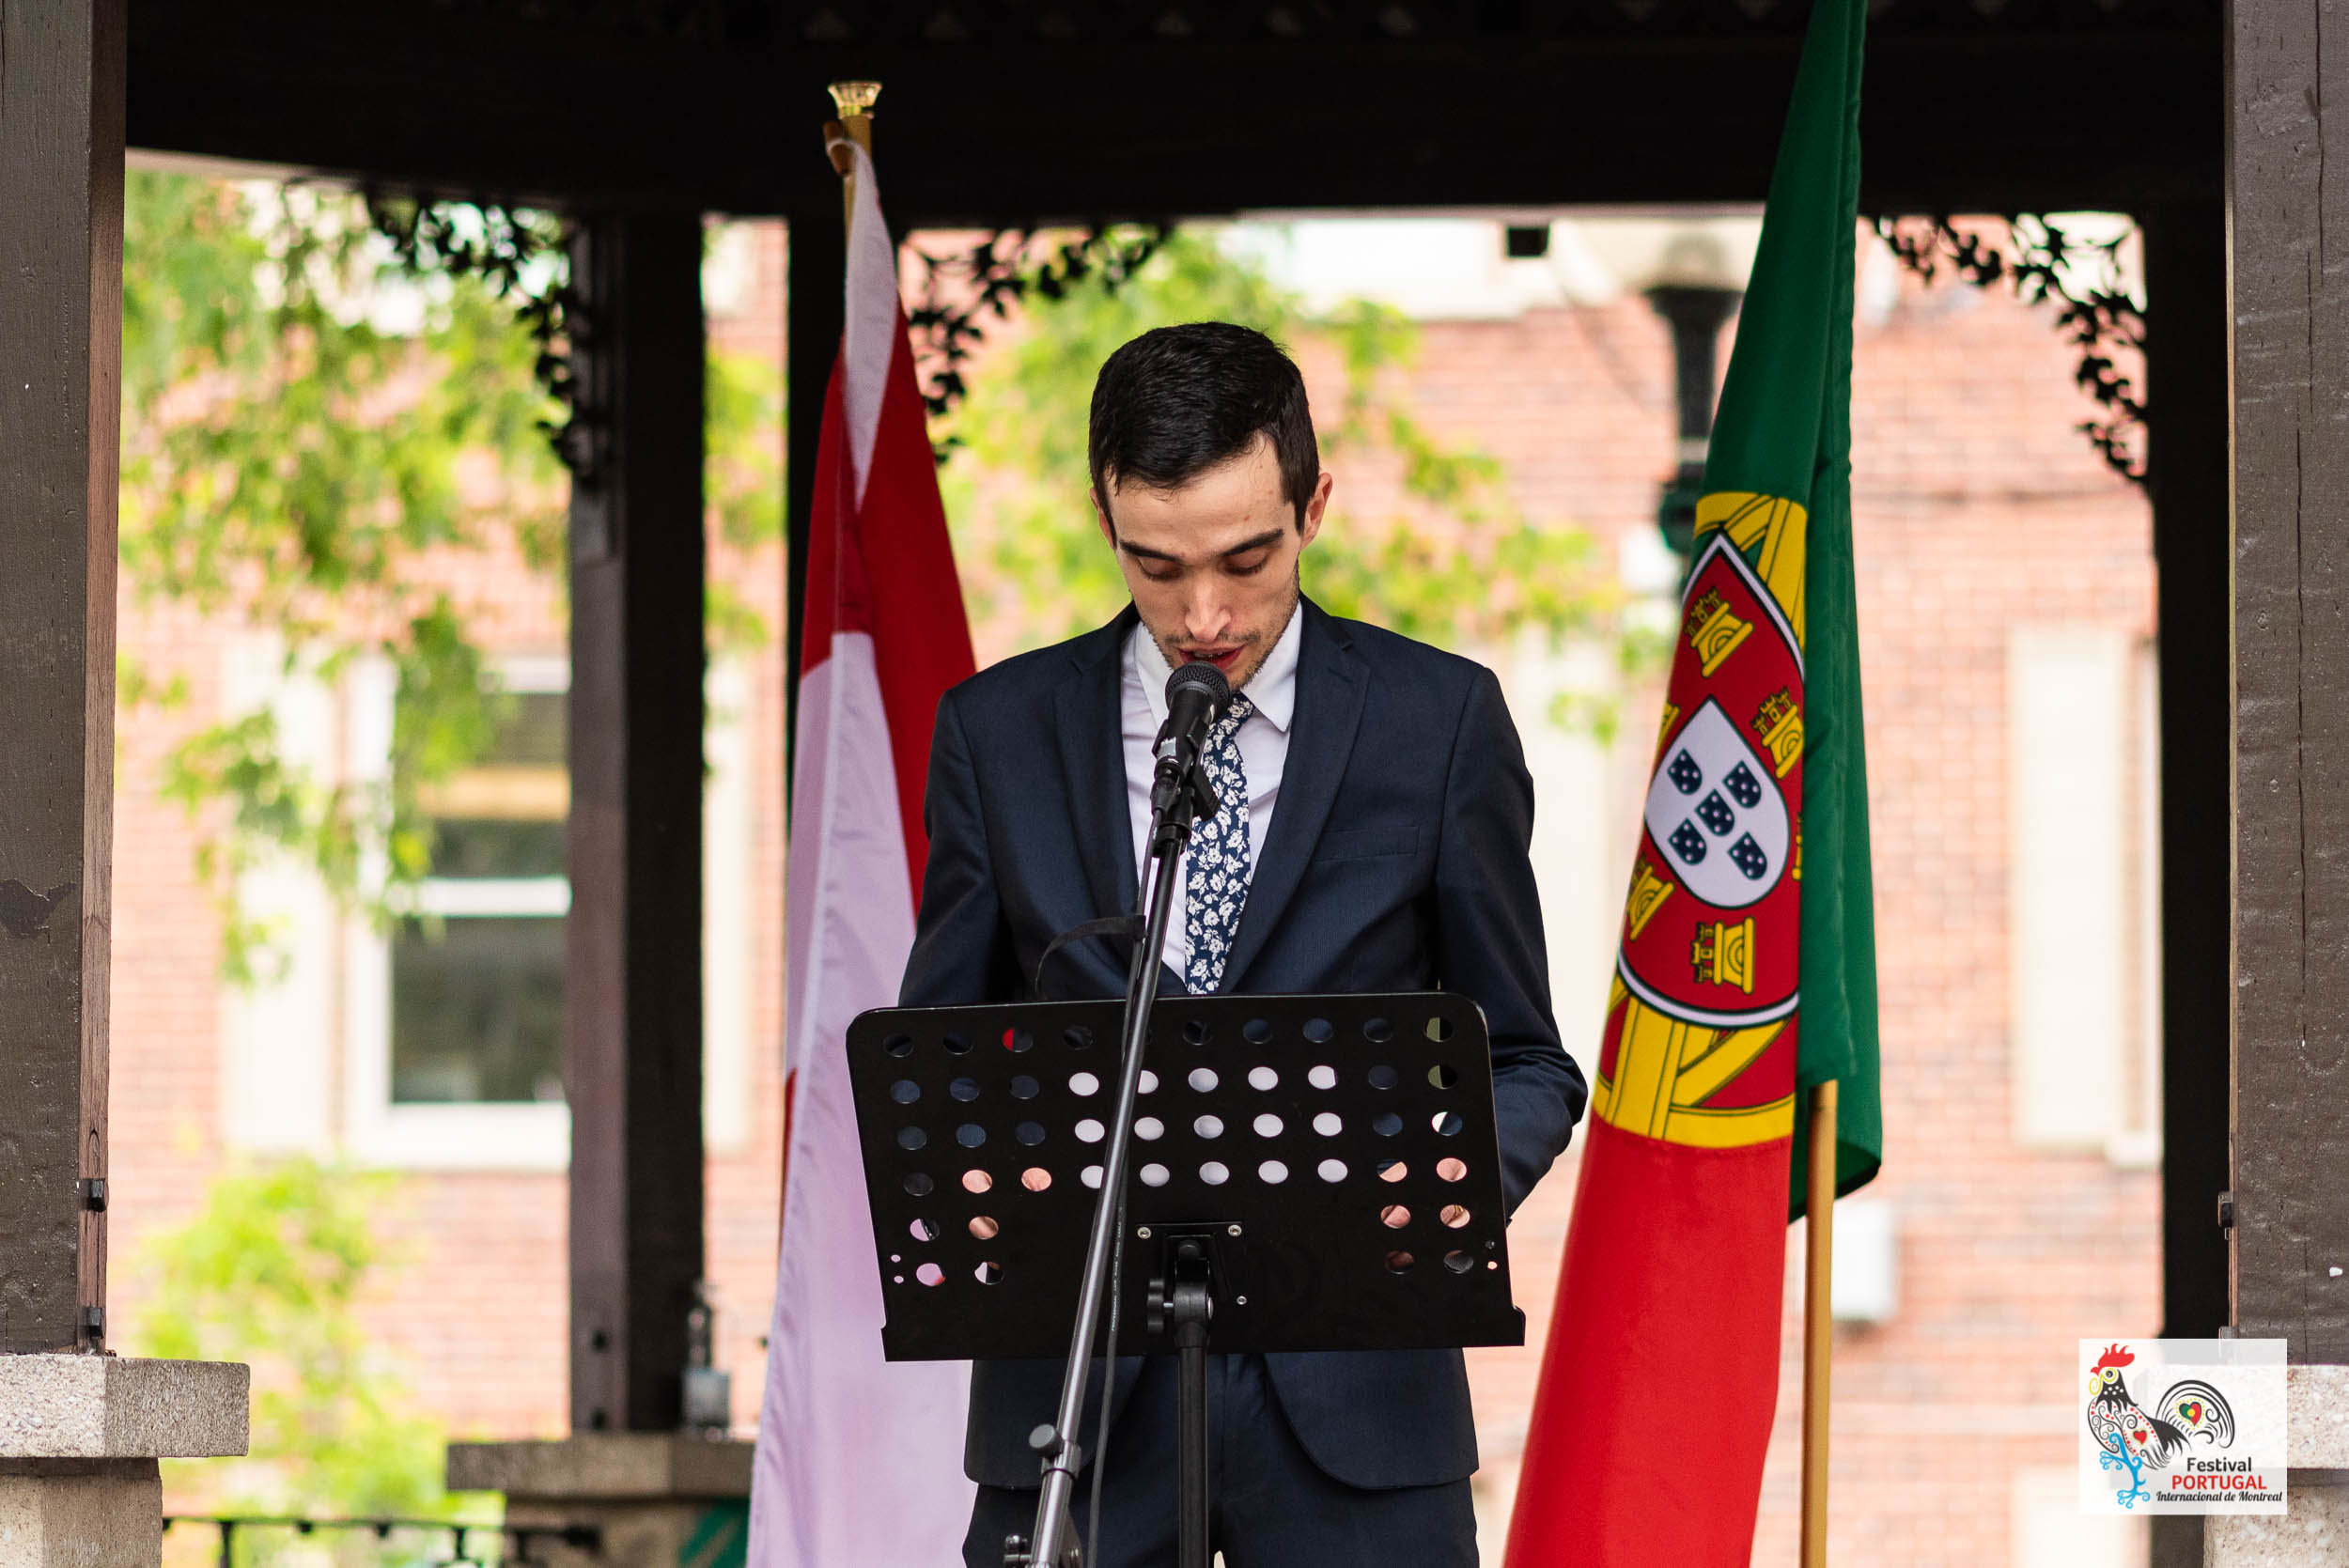 Carlos-Gouveia-Photgrapher-Montreal - Web Resolution - Portugal Day_-54.jpg